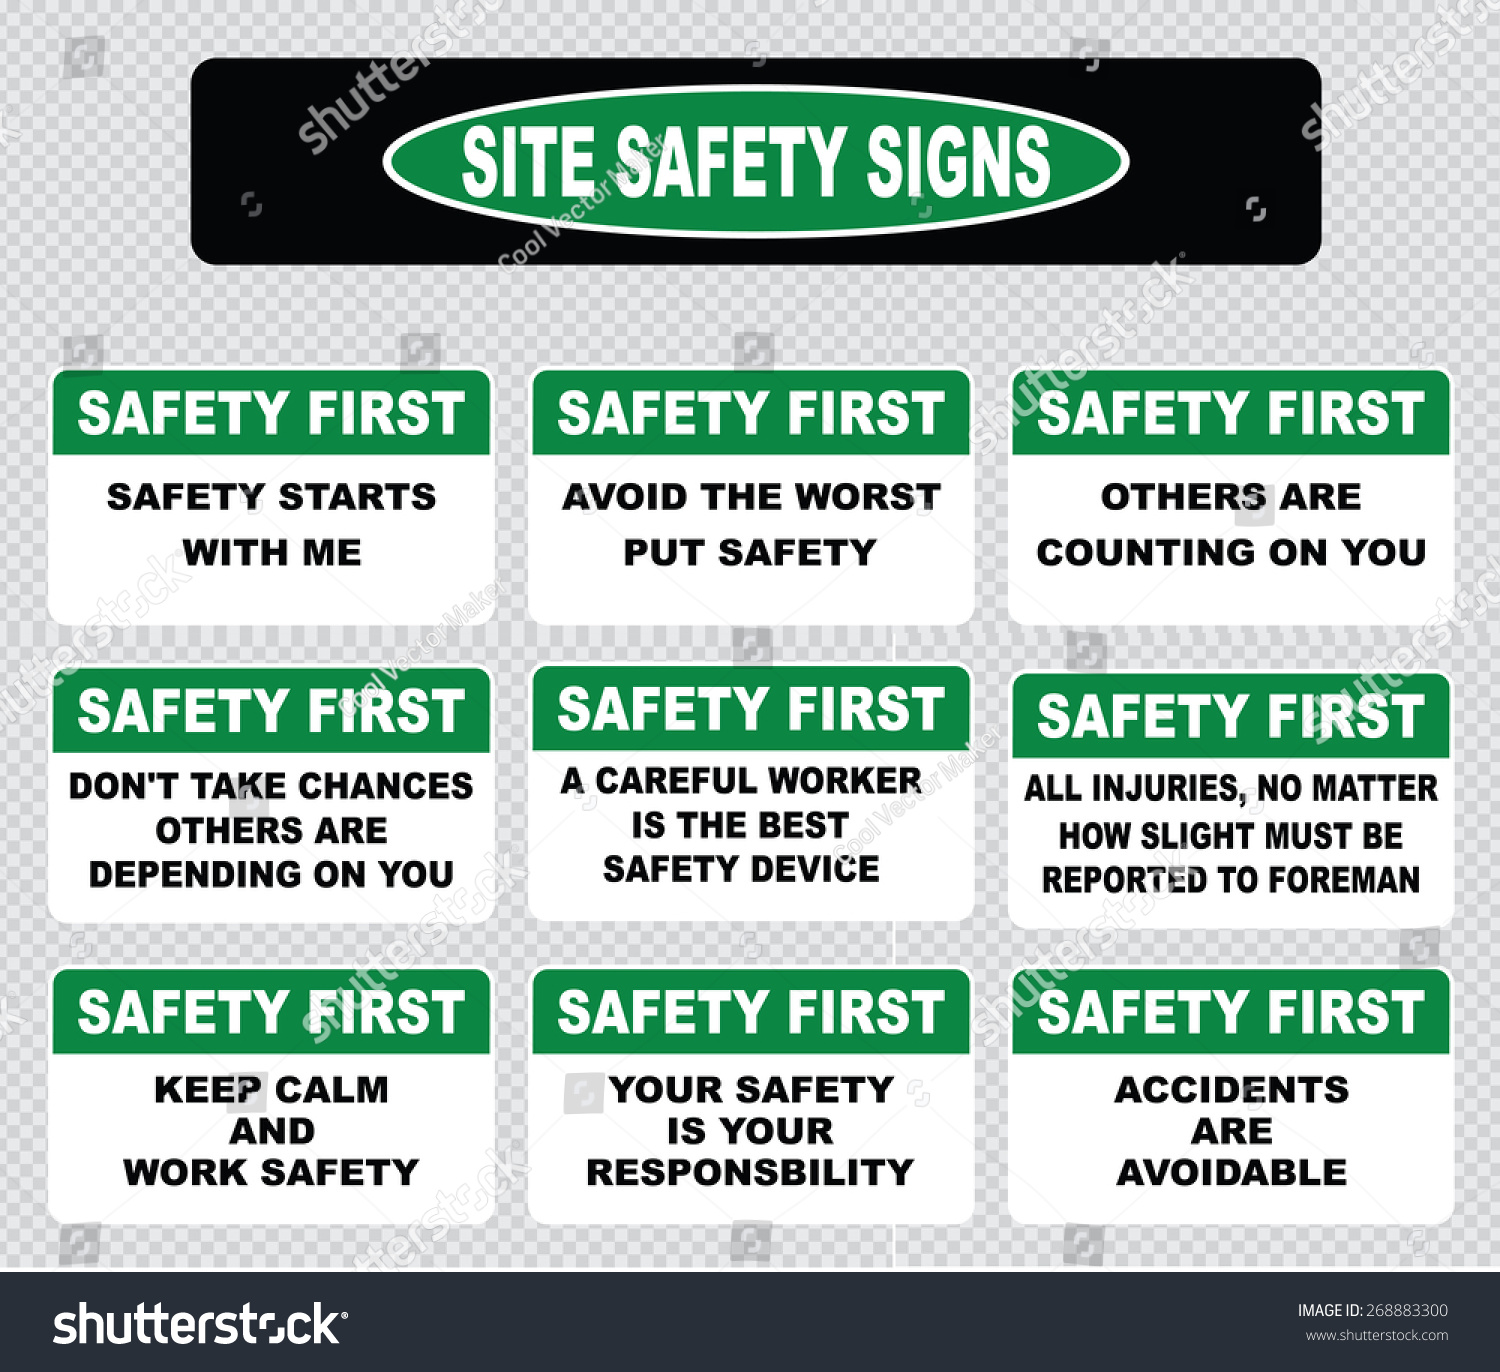 Site Safety Safety First Sign Safety Stock Vector